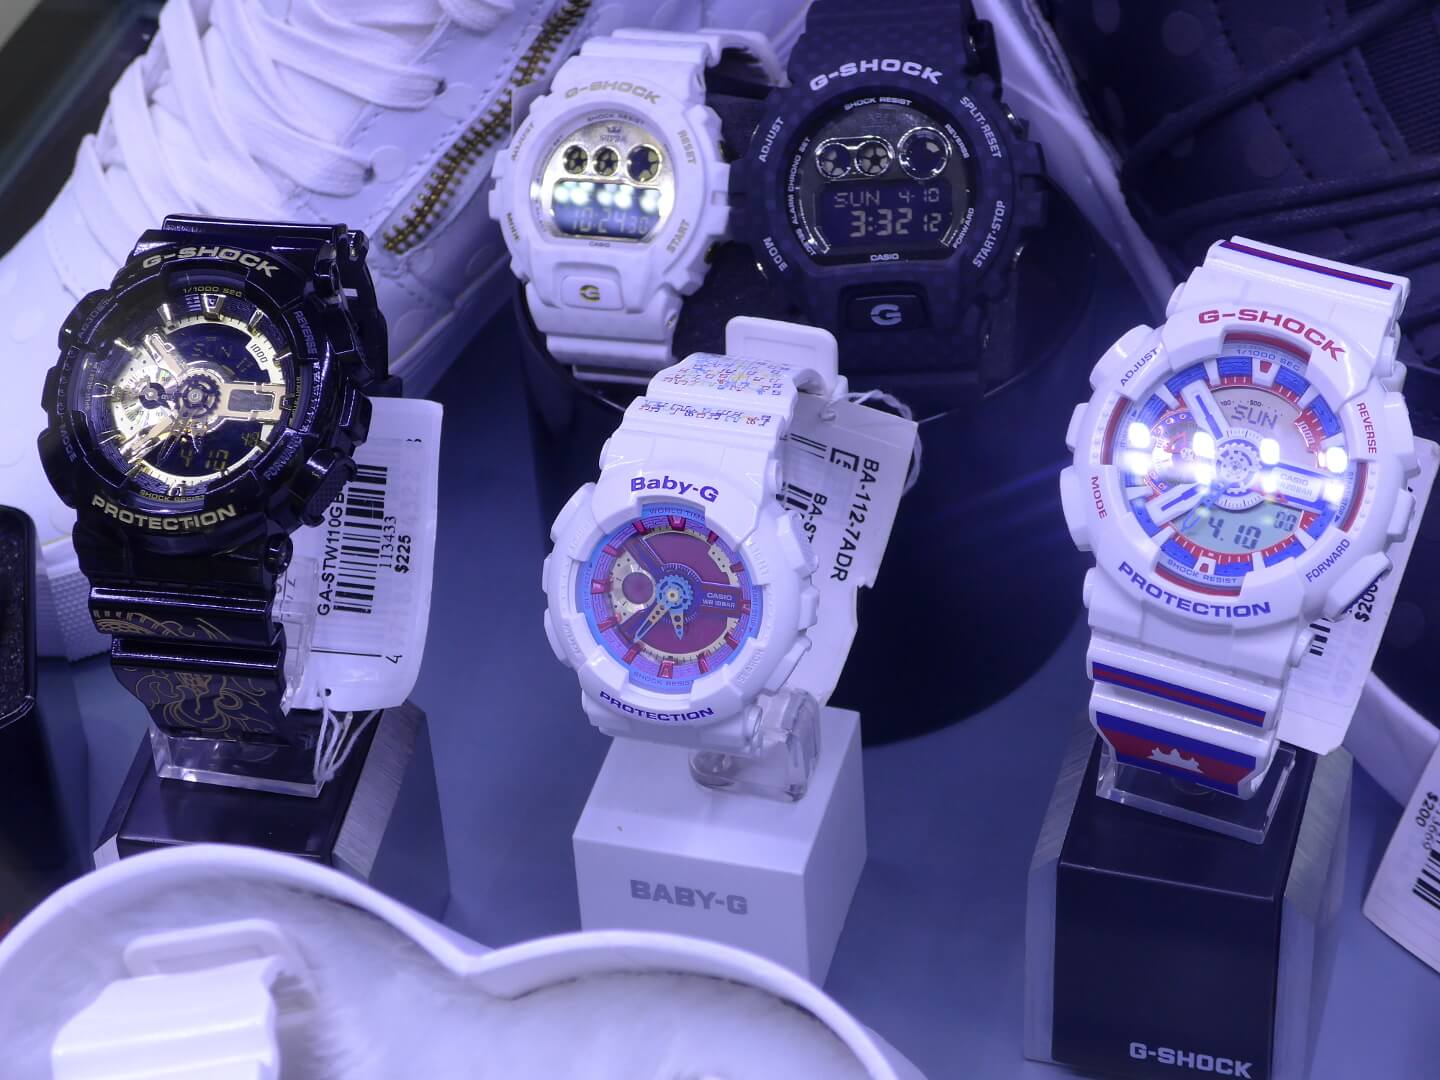 G Shock Watches In Phnom Penh And Khmer Limited Editions Central Casio Baby Bga 230 7b Original Special Edition Cambodia